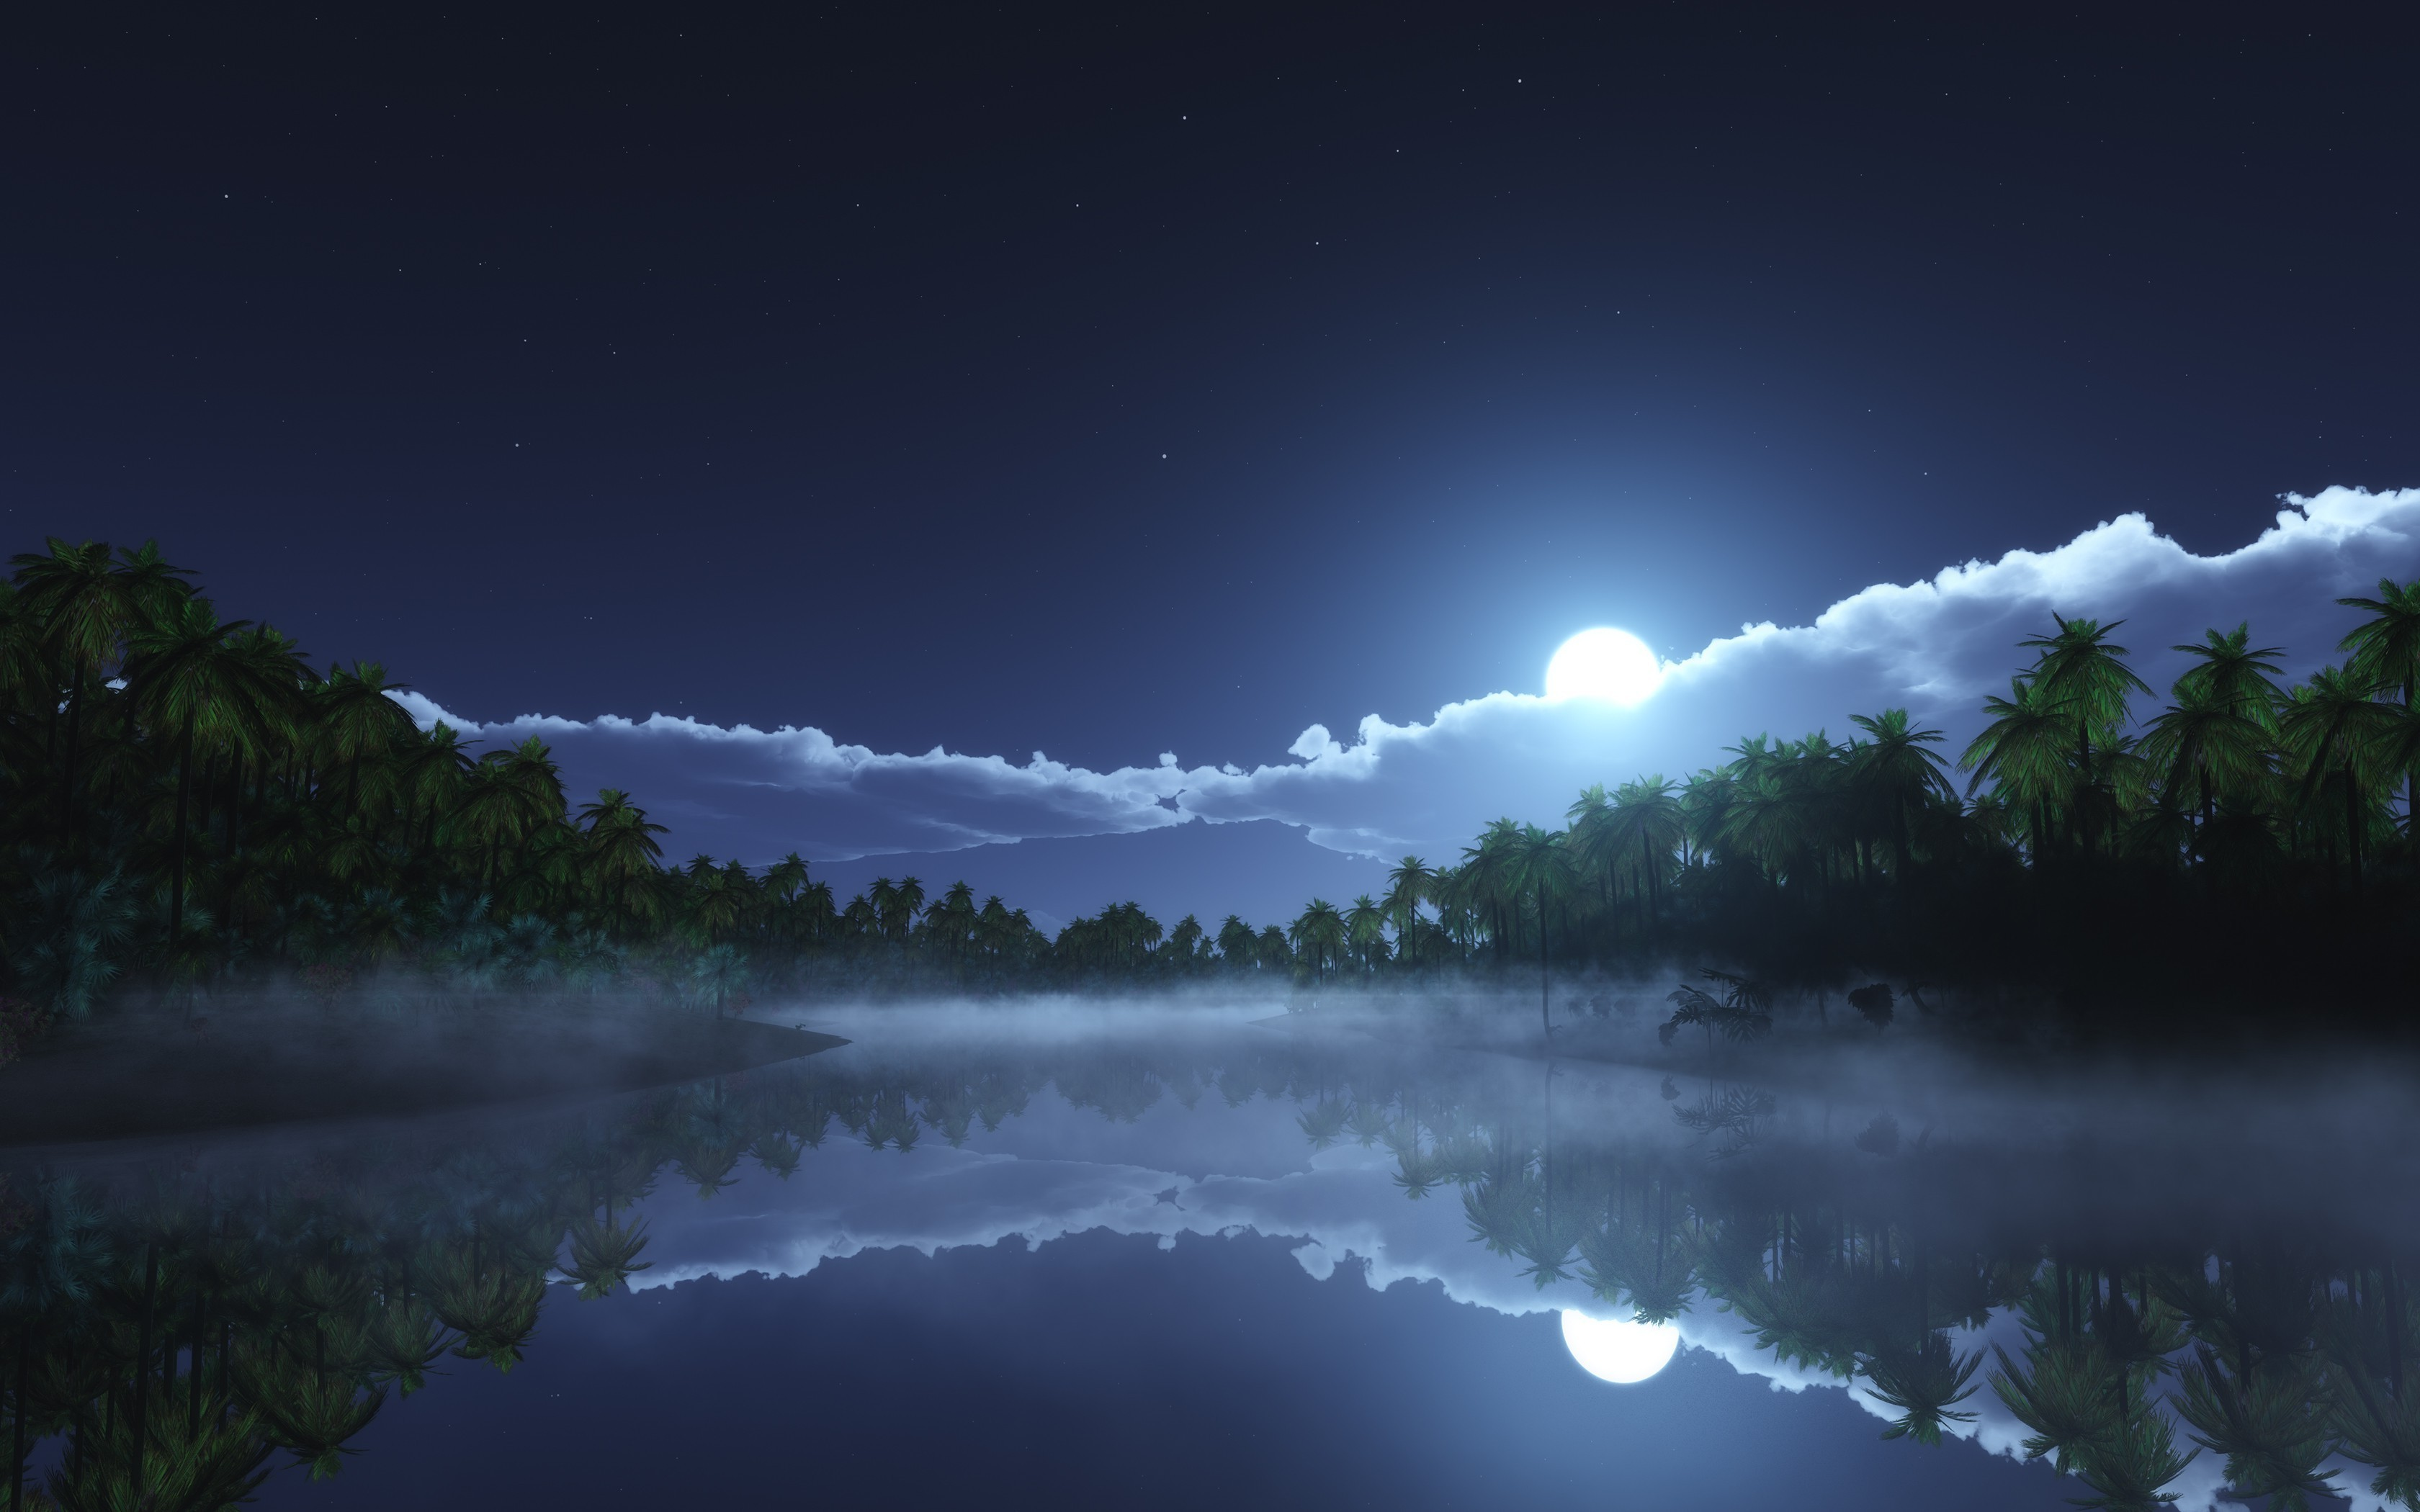 3360x2100 nature, Landscape, Starry Night, Moonlight, Clouds, Tropical, Mist, Palm